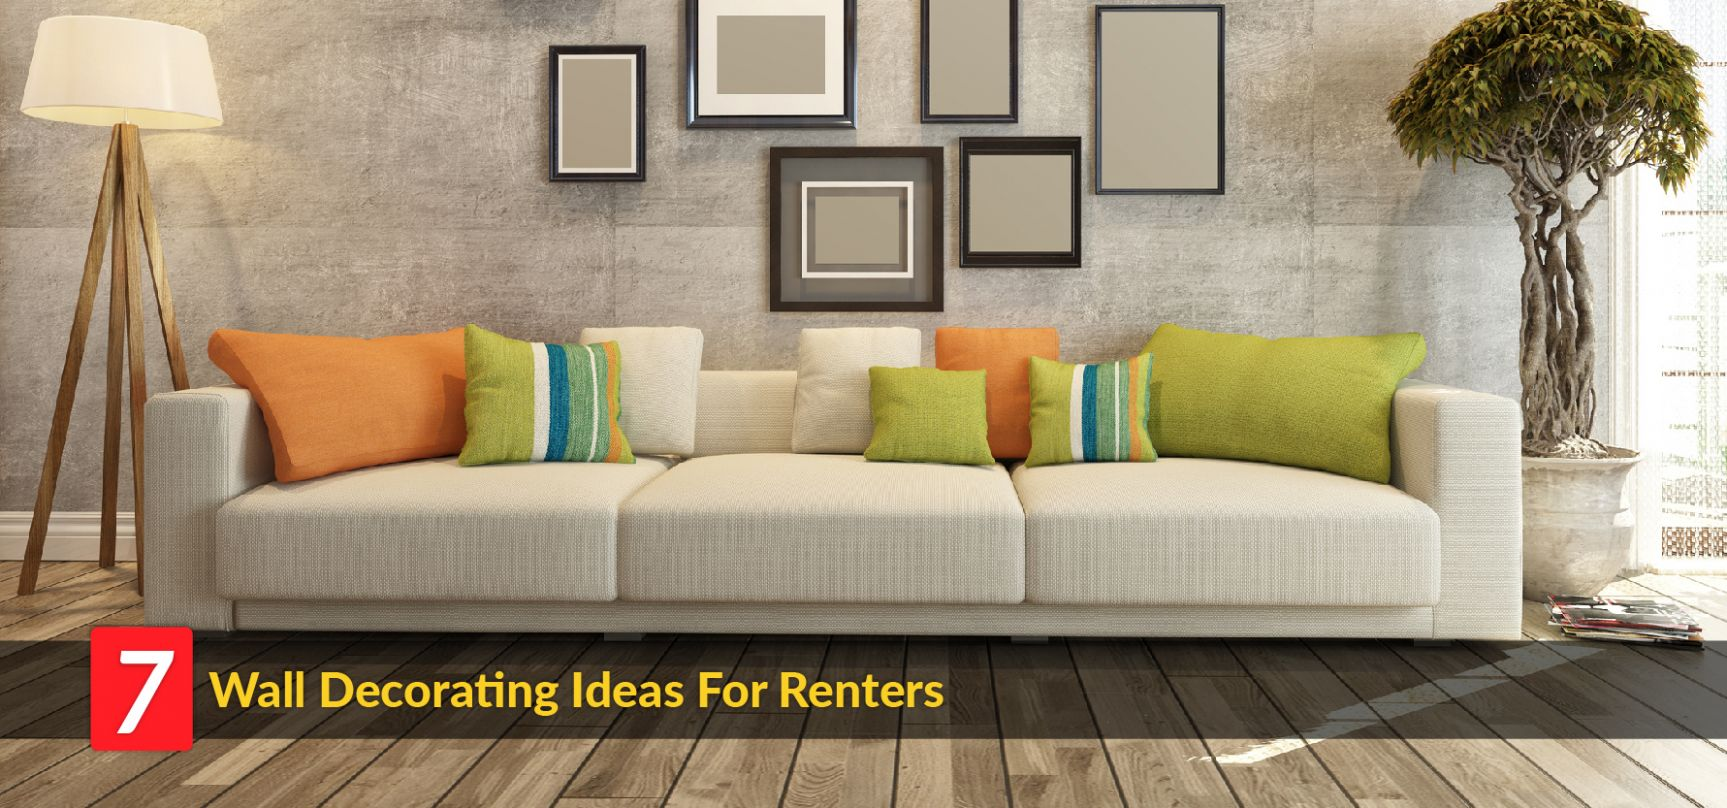 Home Décor Ideas: Here How Renters Can Decorate Walls